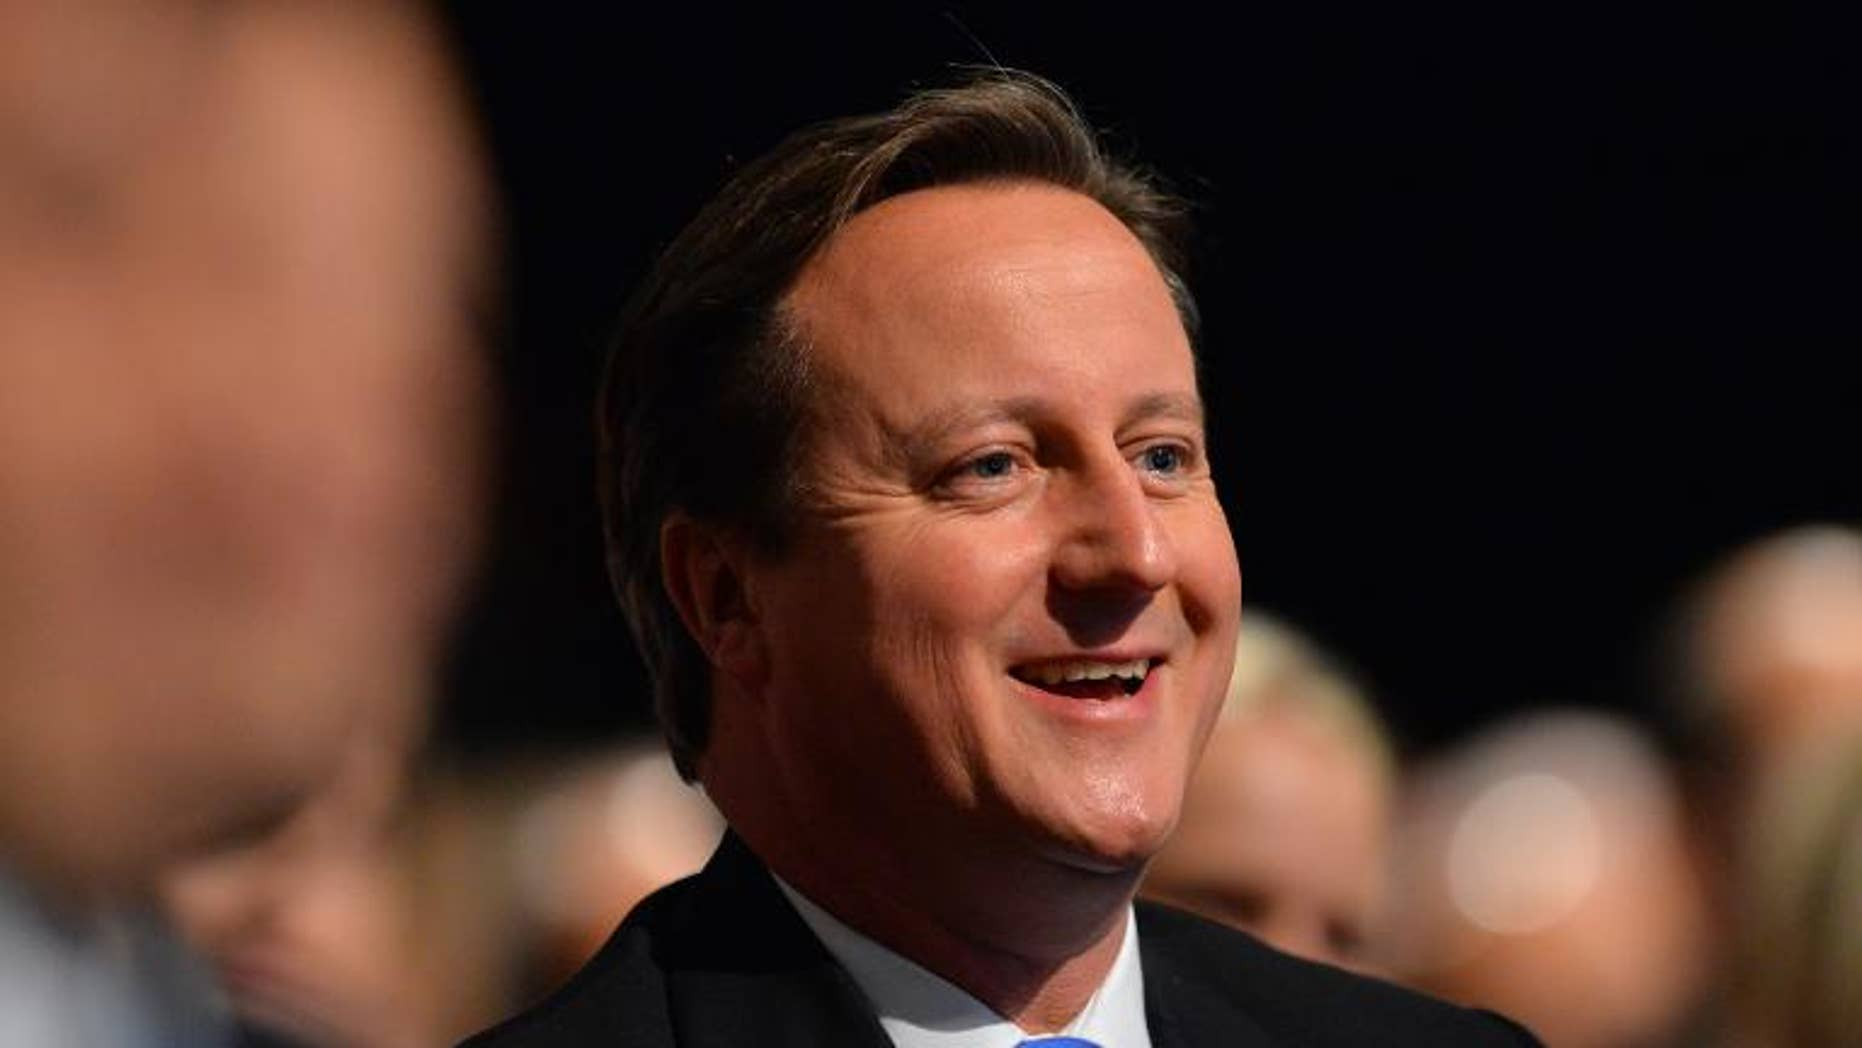 British Prime Minister David Cameron laughs as he listens to a speech by London Mayor Boris Johnson at the annual Conservative Party Conference in Manchester, on October 1, 2013